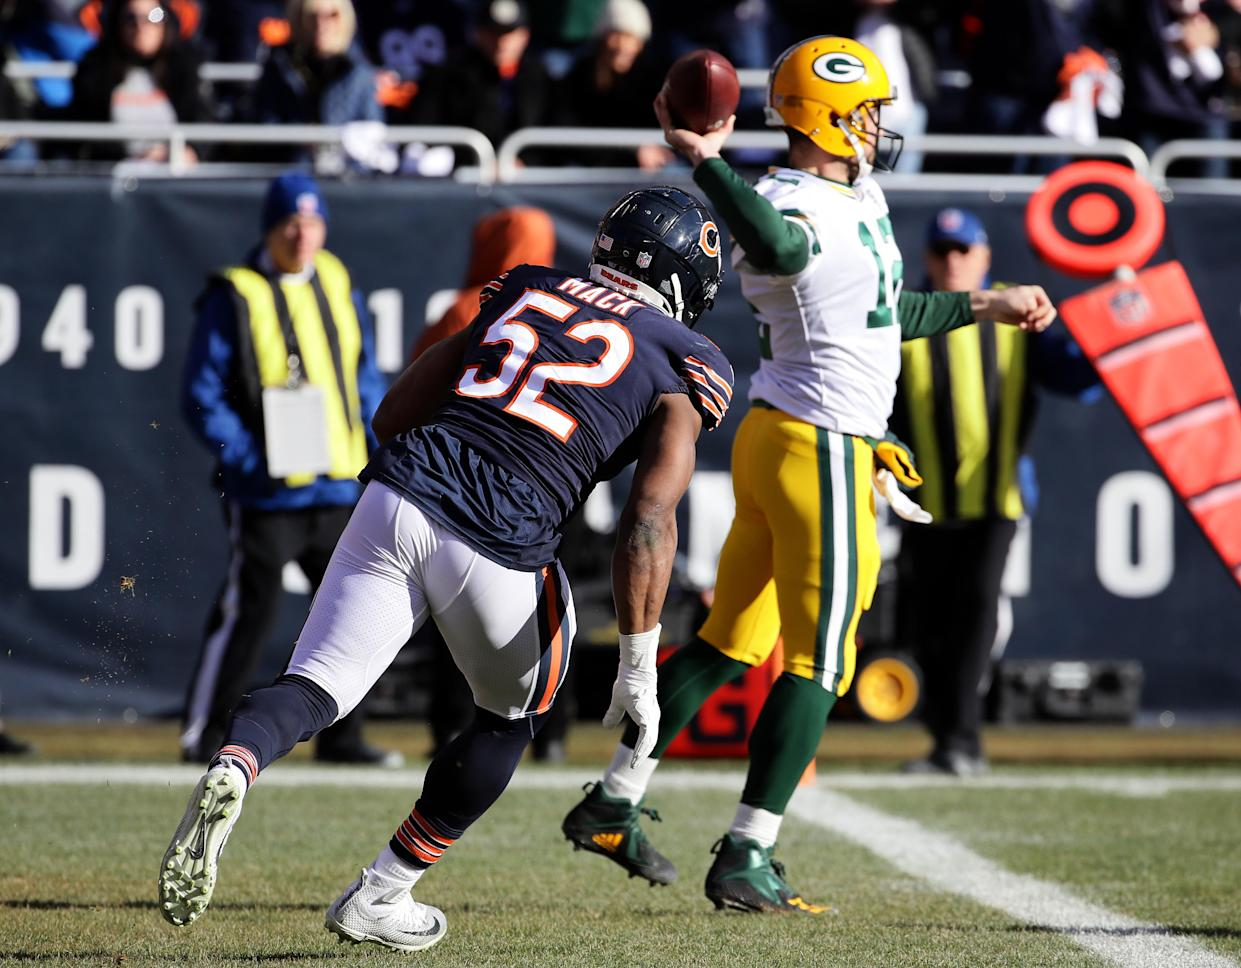 Aaron Rodgers hasn't done enough for one former Packer to overlook a tough day against the Bears. (Getty)